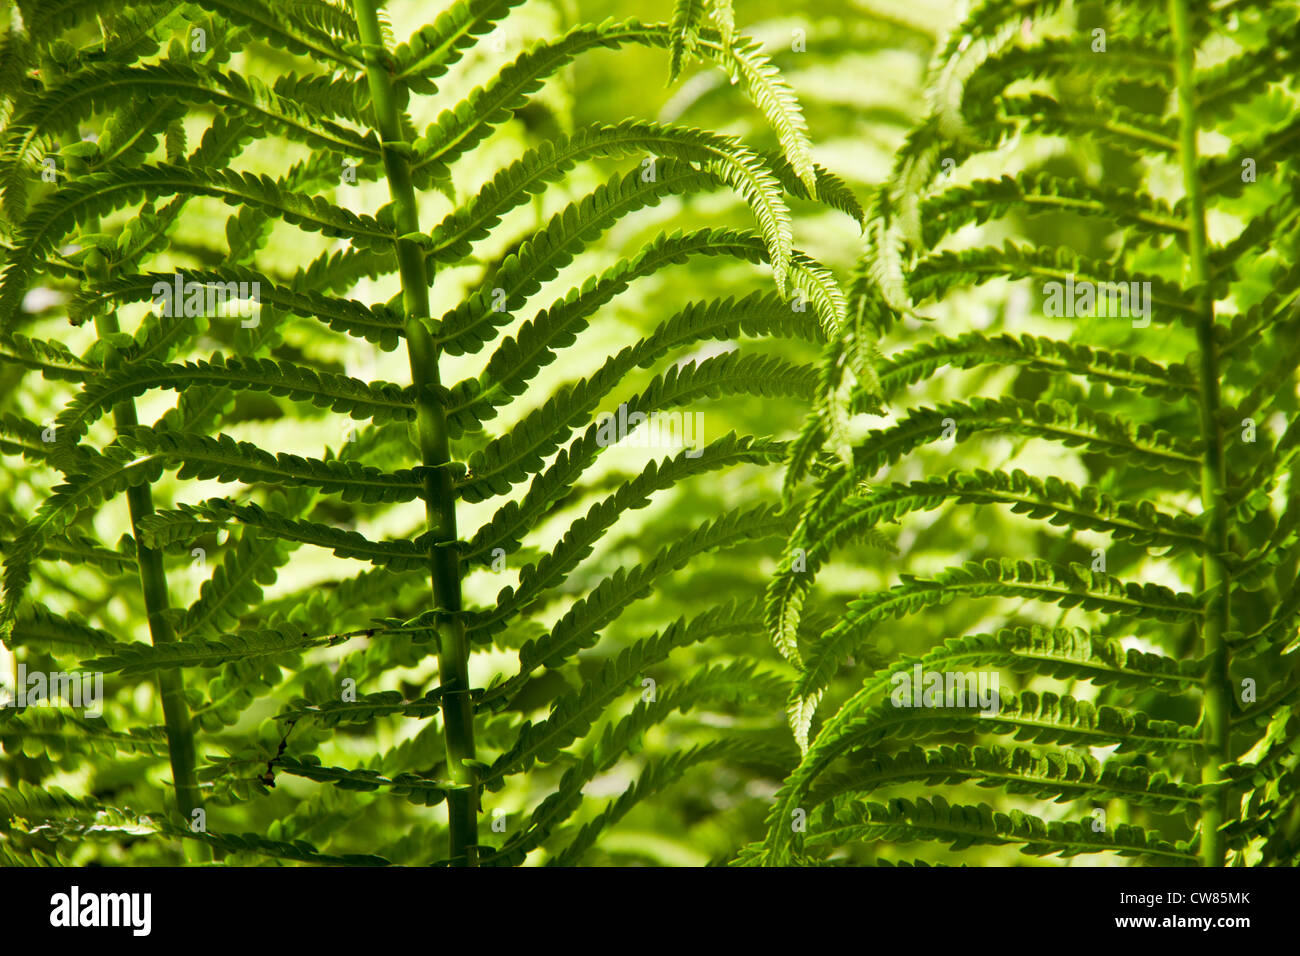 Fern leafs background Stock Photo